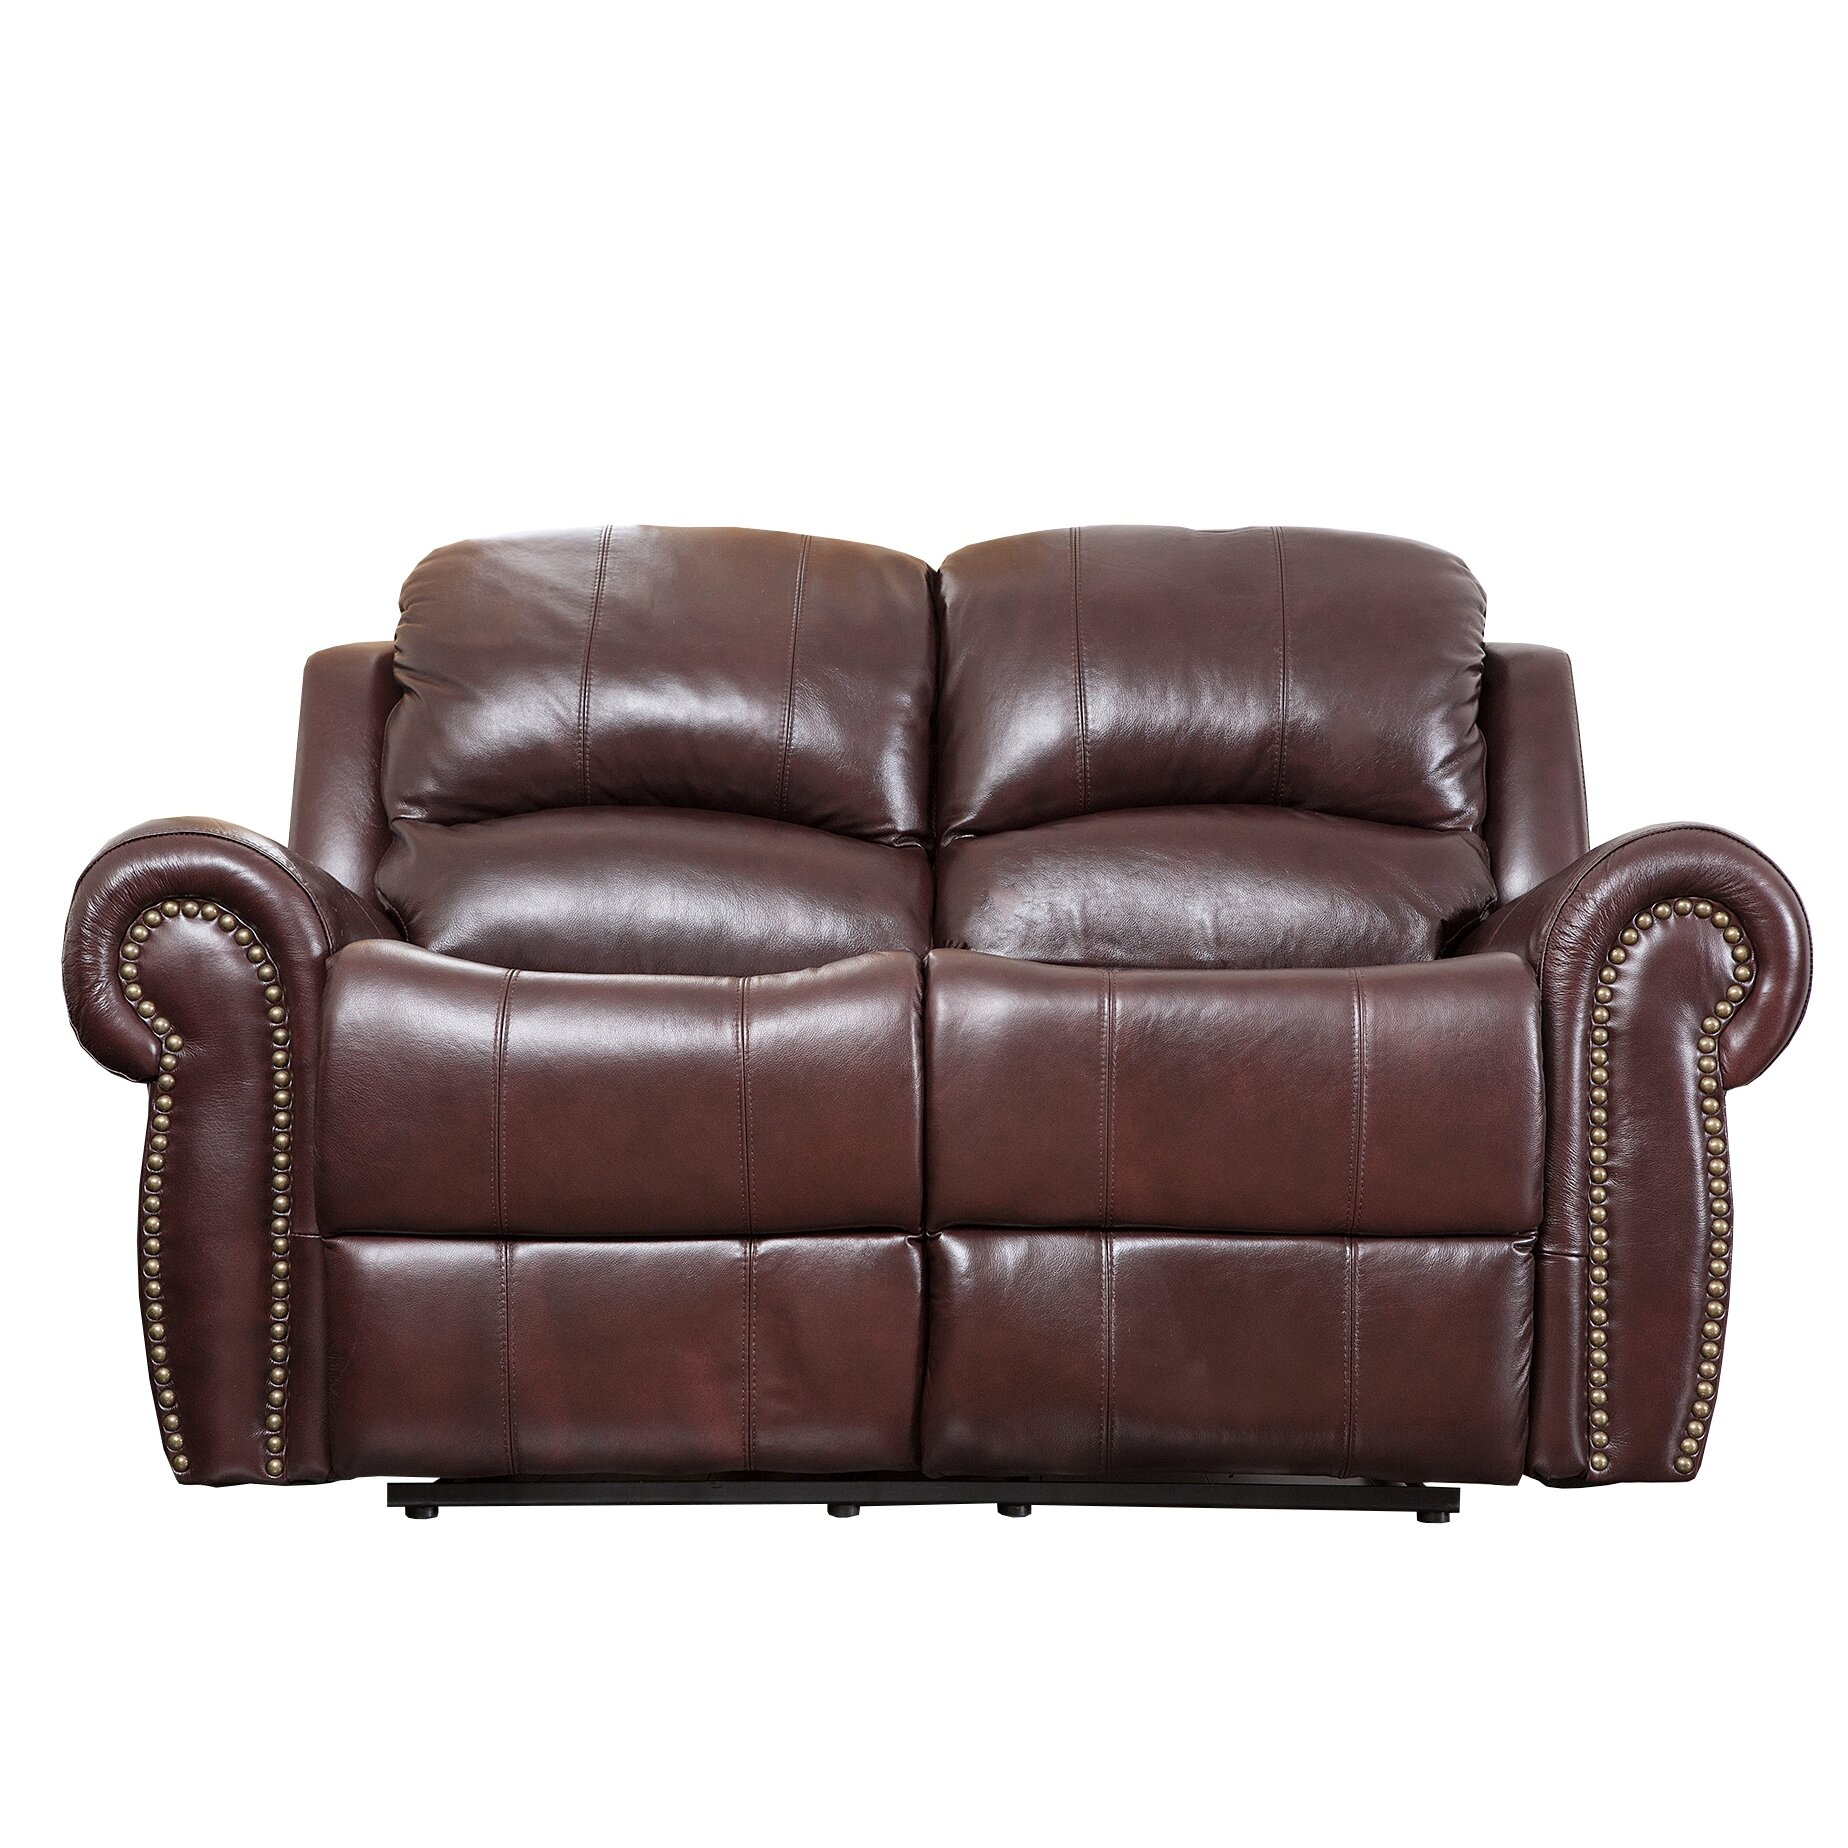 Abbyson Living Sedona Leather Reclining Loveseat & Reviews